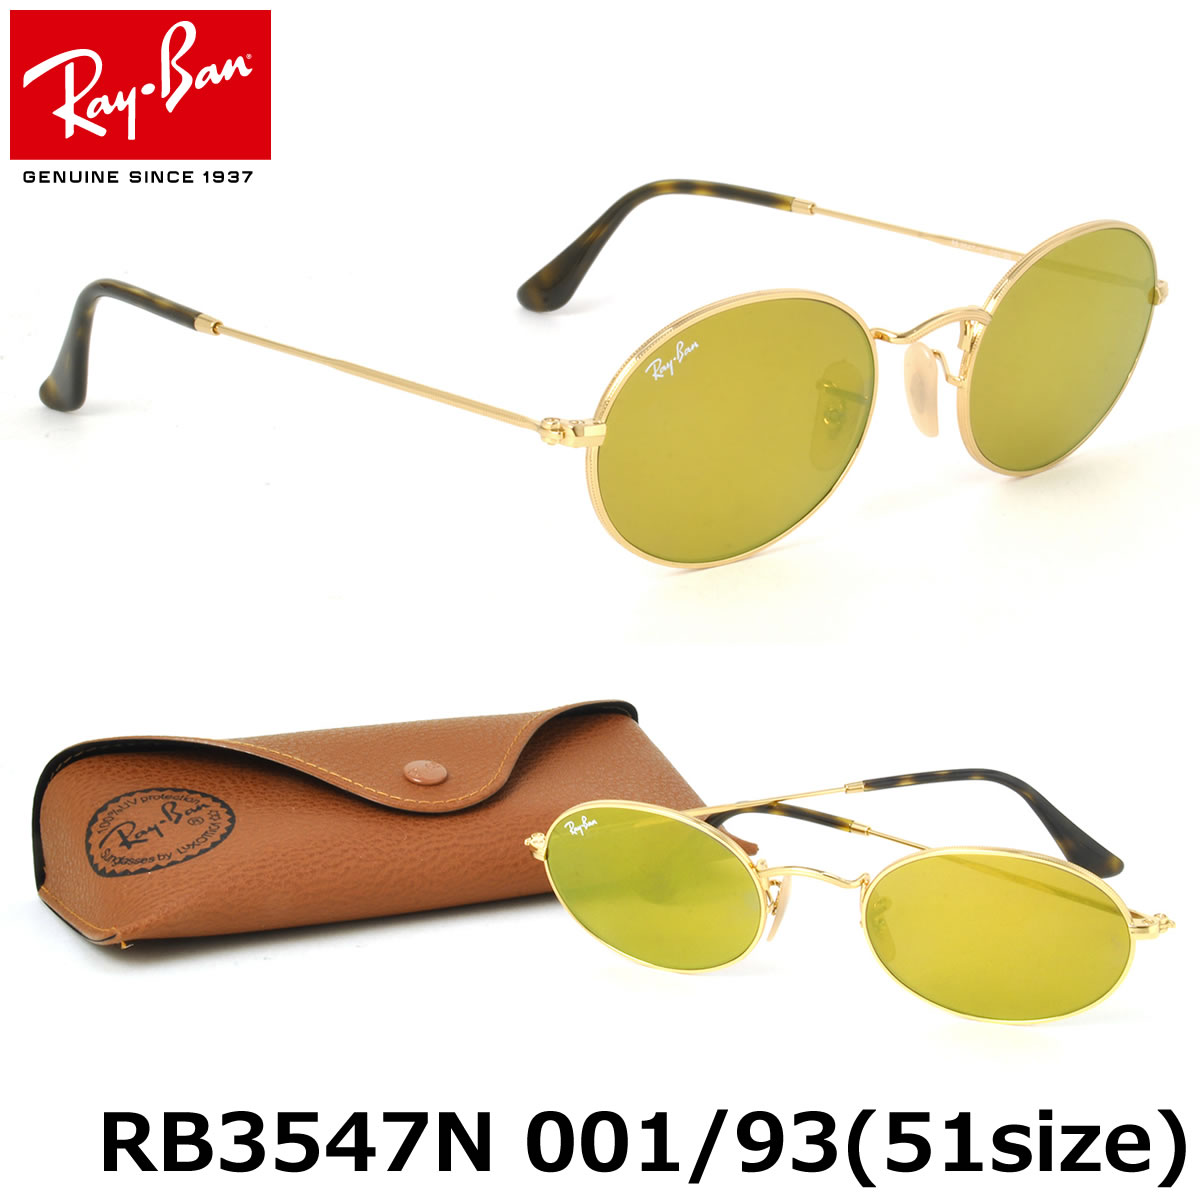 403e73eb0e Pro-trendy round metal frame and this model that was just equipped with the flat  lens which began to attract attention. The lens draws a slow curve